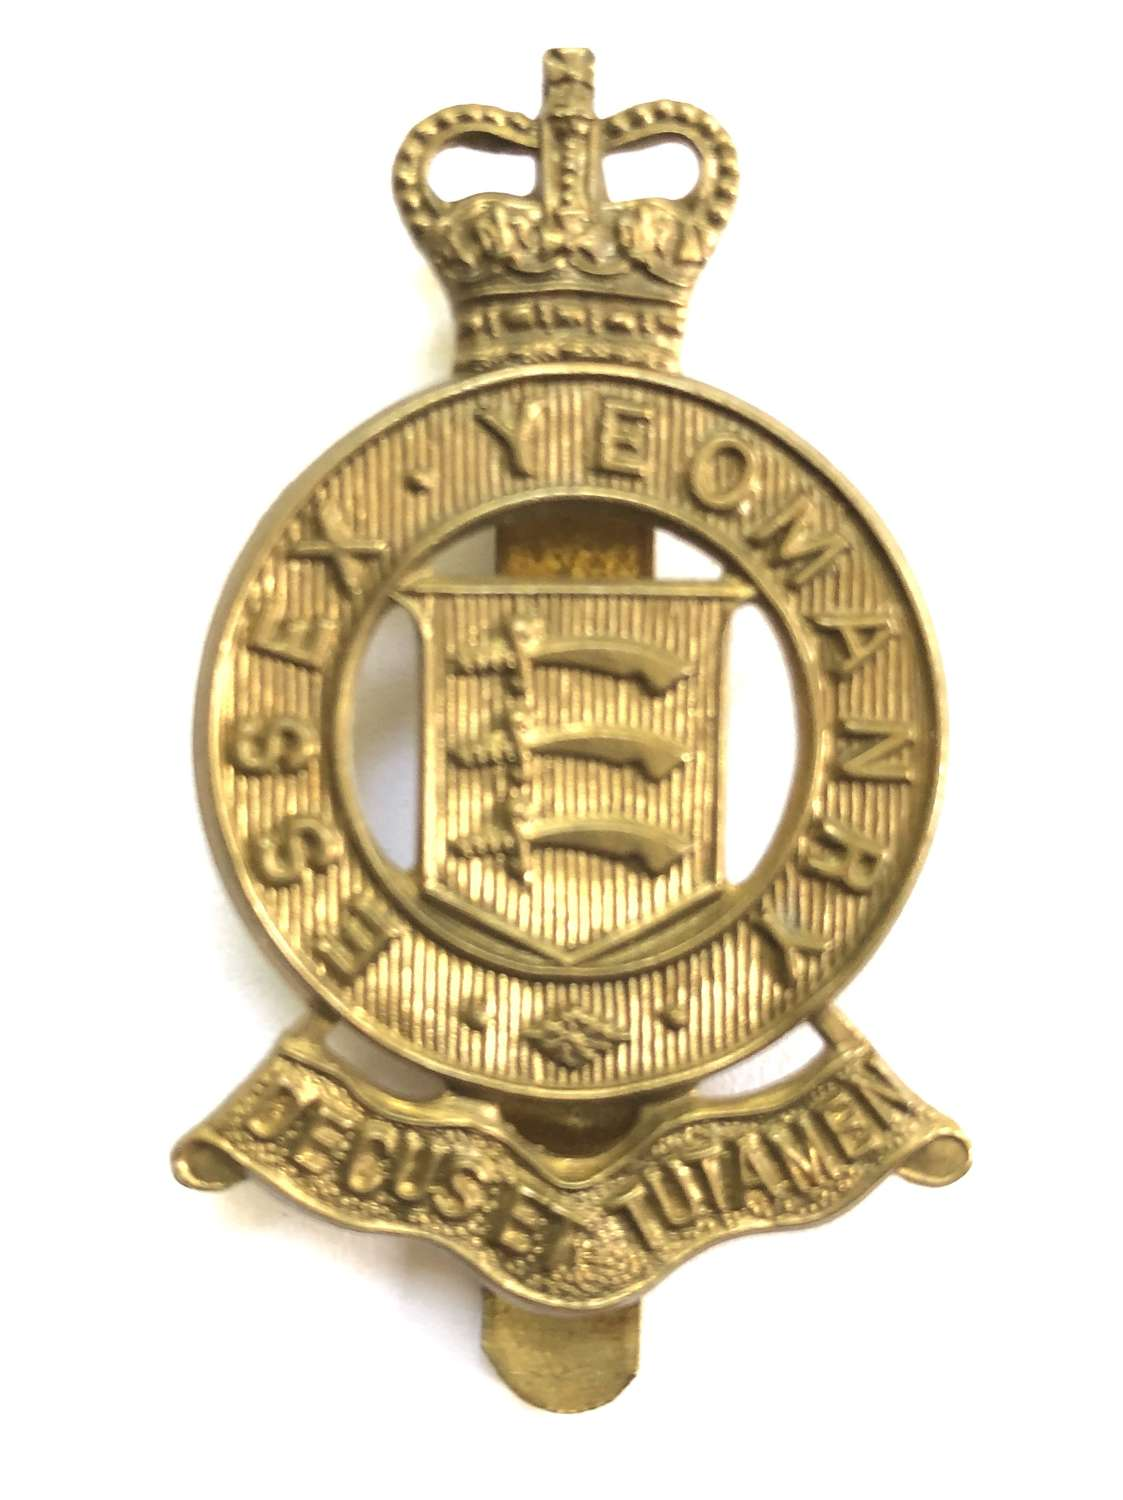 Essex Yeomanry post 1963 brass cap badge